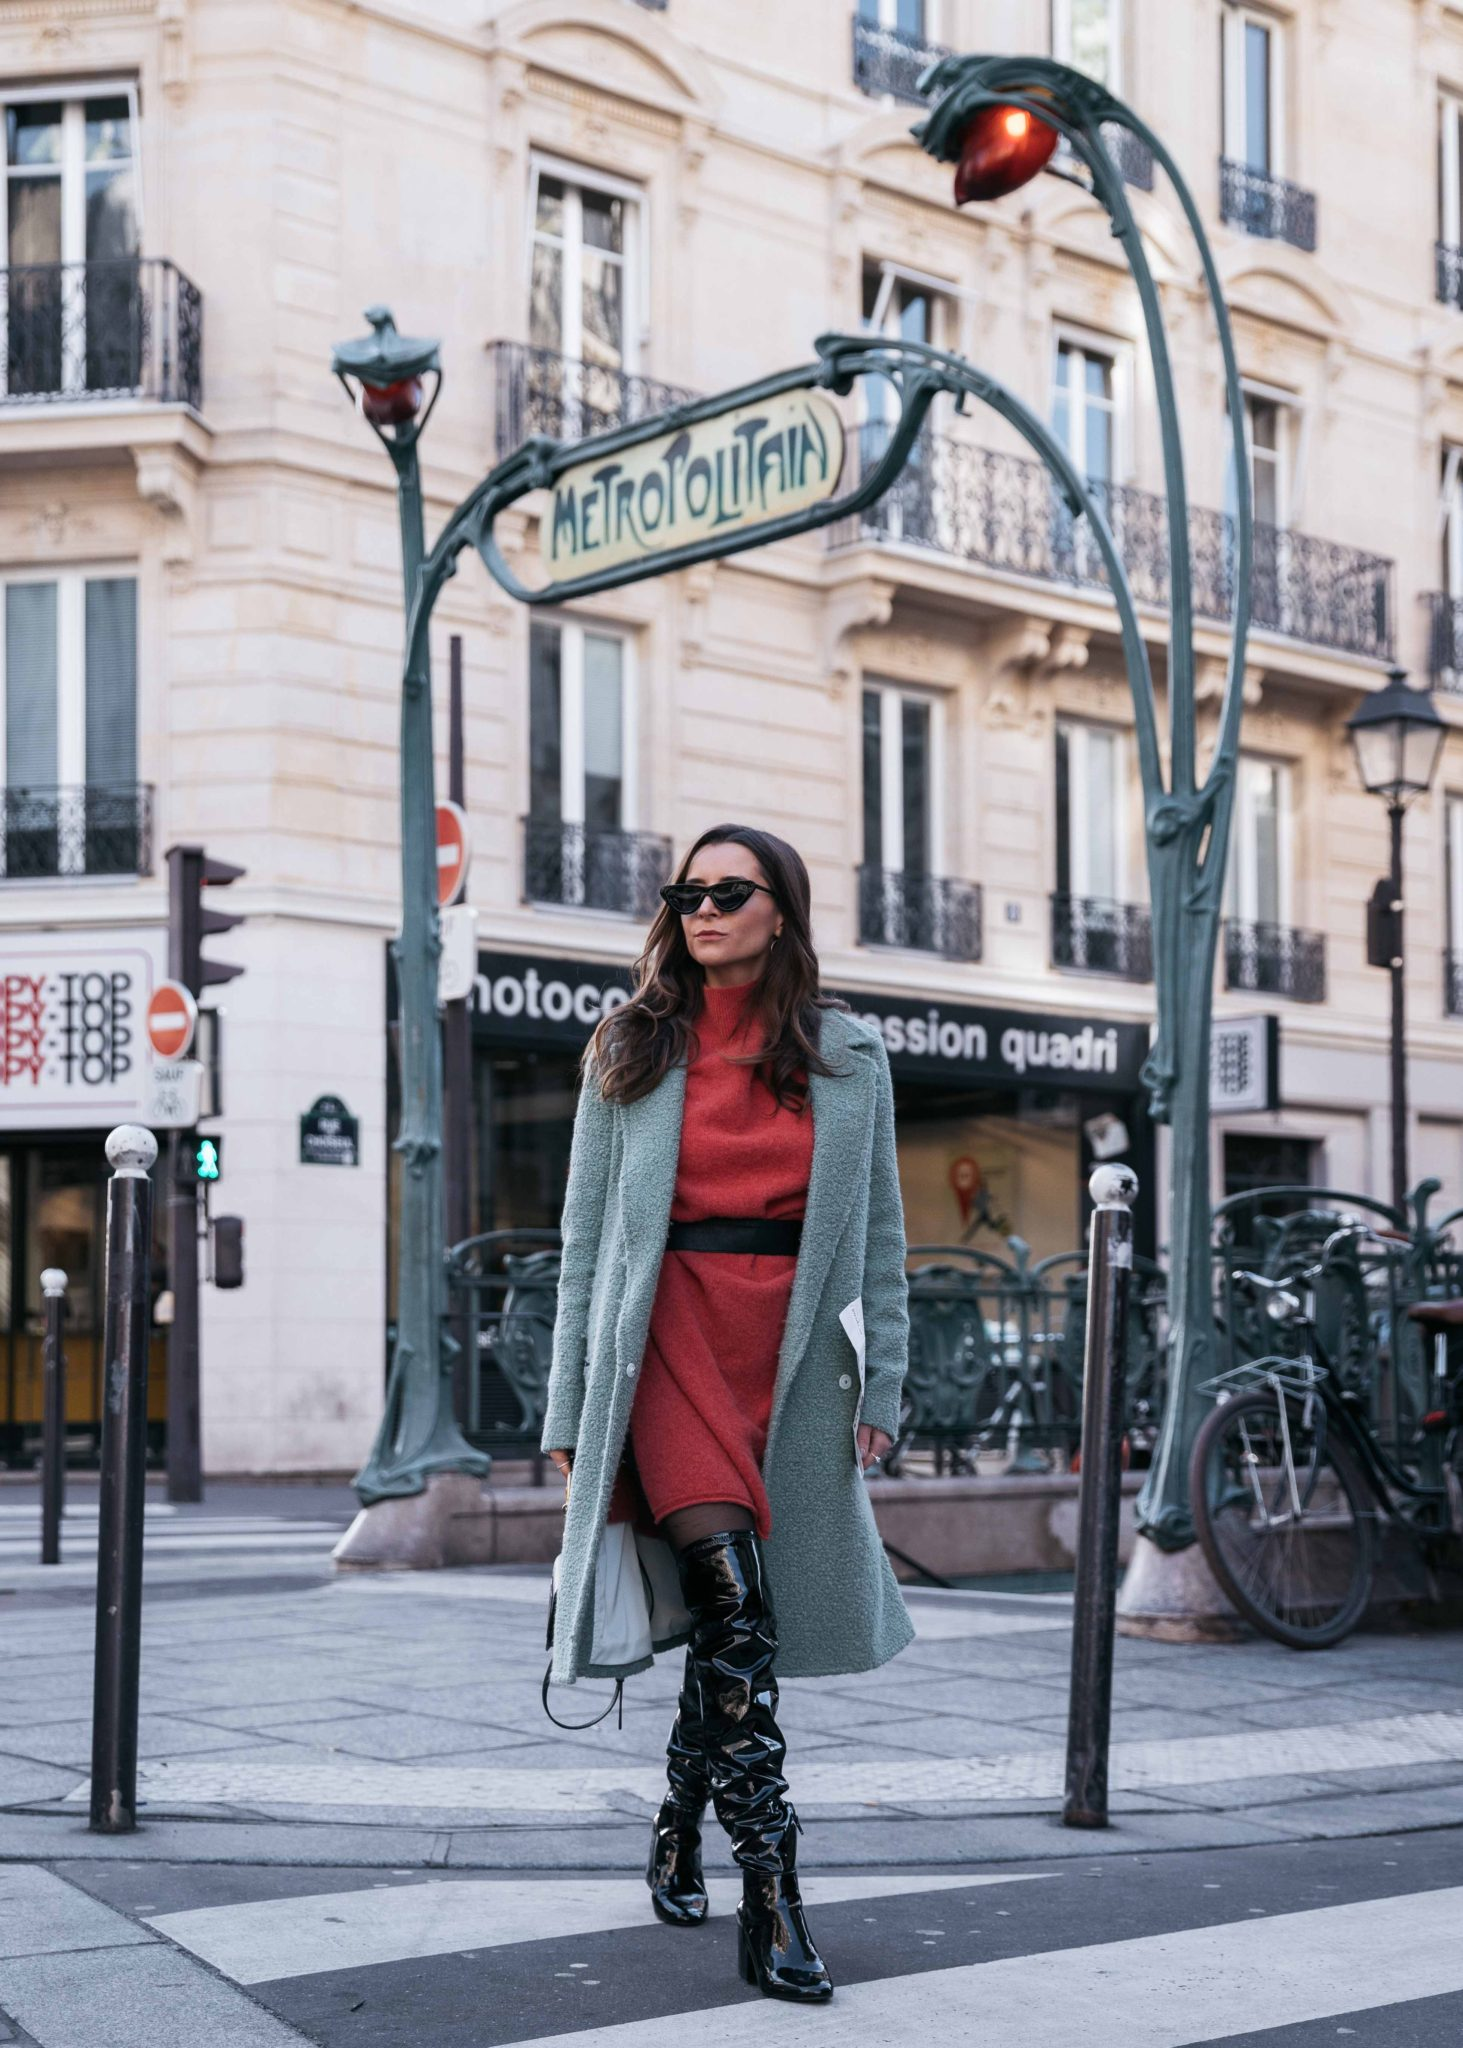 Best Street Style Paris Fashion Week Mars 2018 of Julia Comil / French Fashion Blogger in Los Angeles - Outfit for Ingie Paris Paris Fall Winter 2018 2019 show - Suistudio Mint Teddy Coat -Orange sweater dress by American Vintage